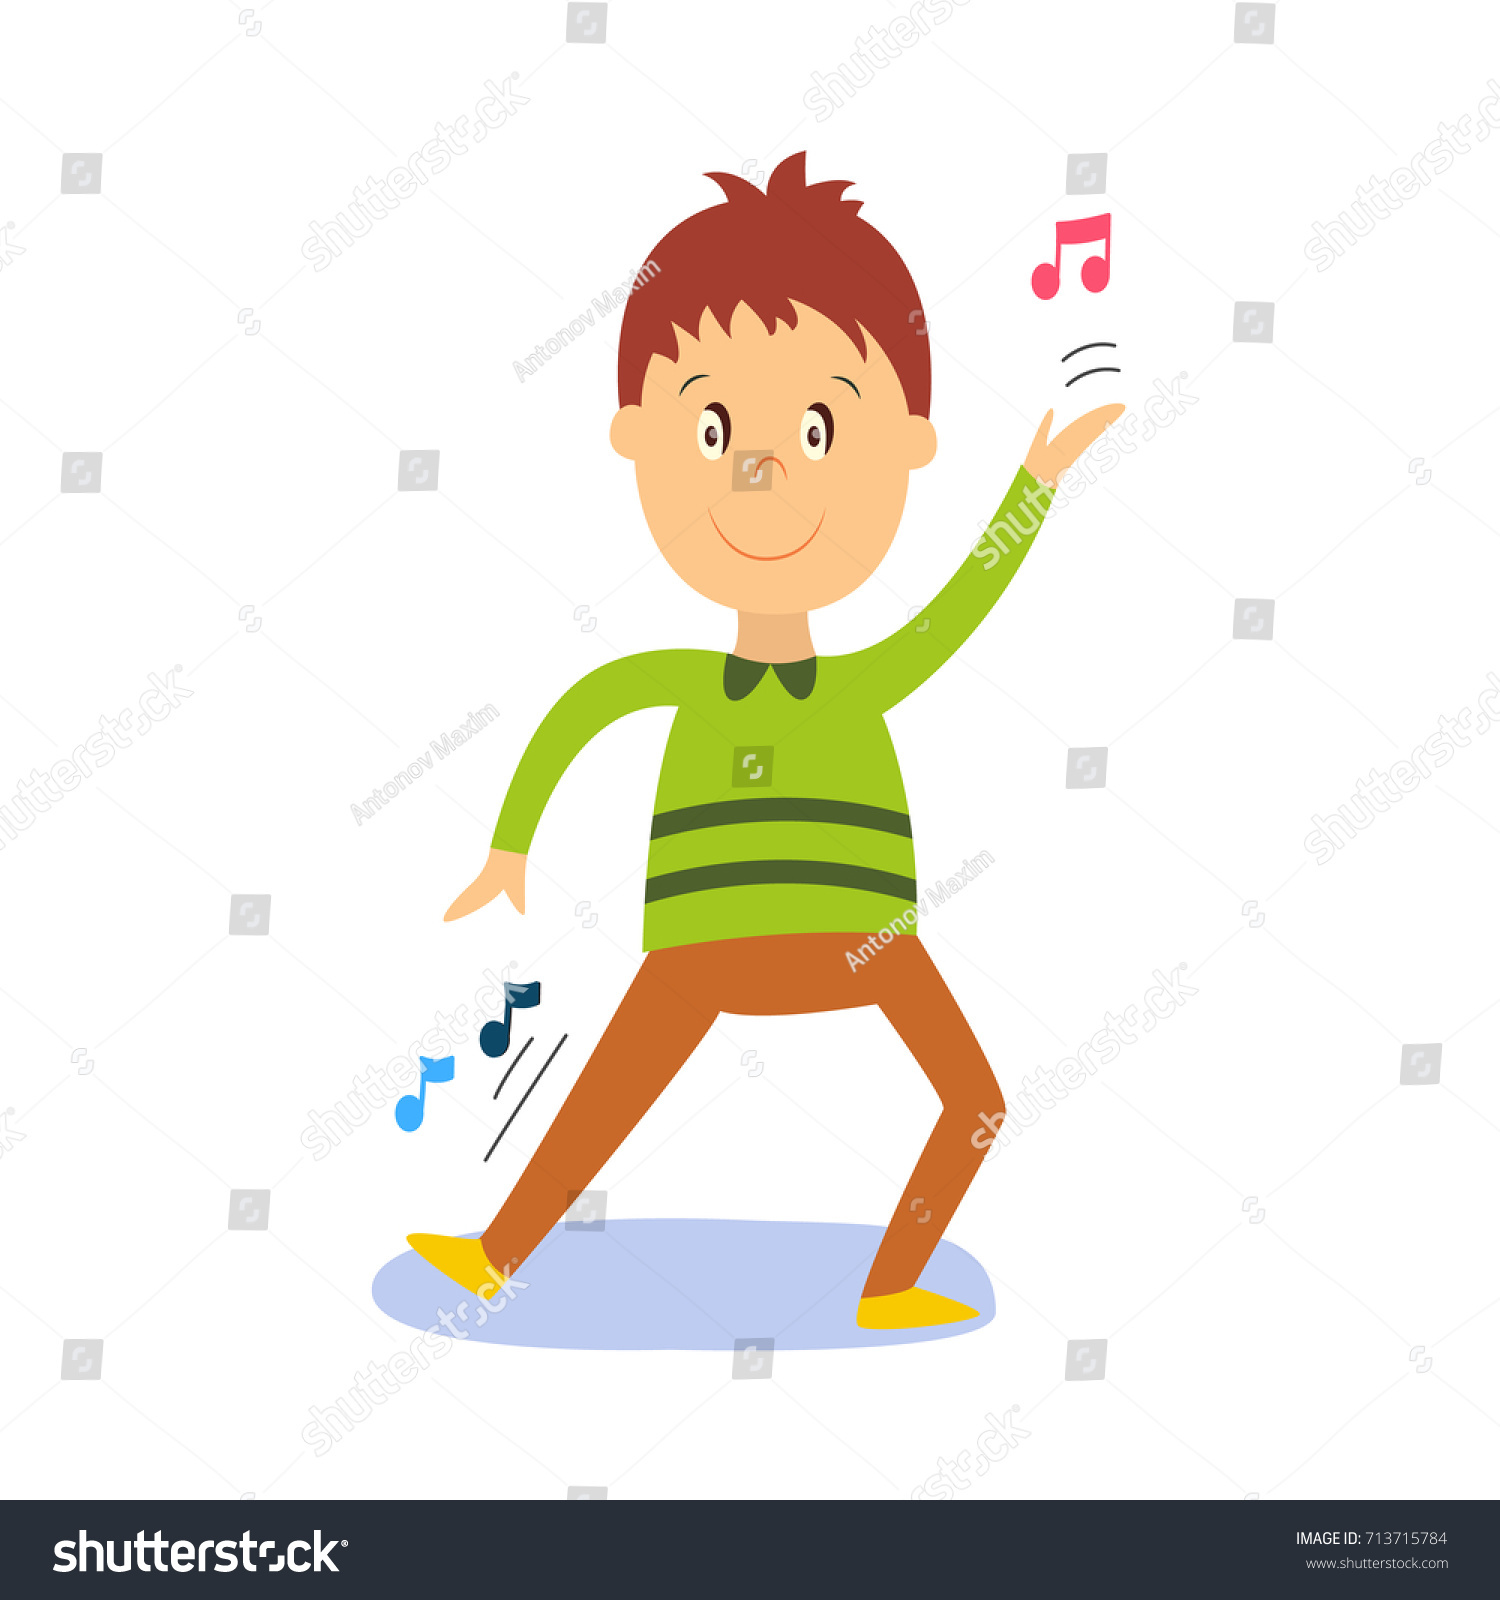 Vector flat cartoon boy child dancing alone in green pullover smiling little dancer male character